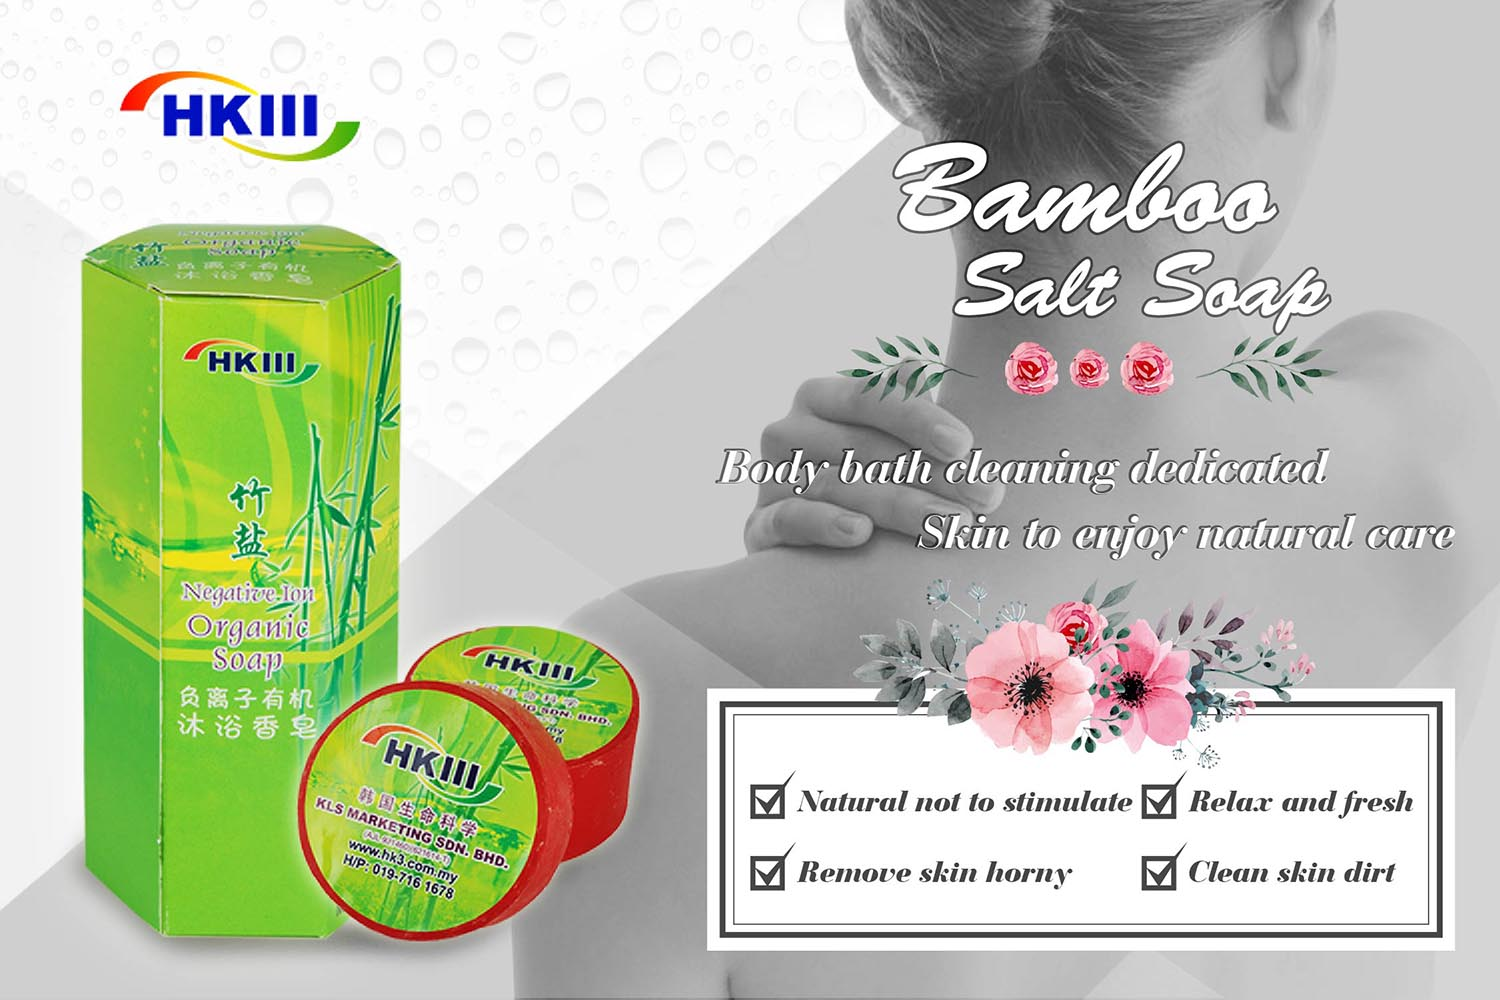 hk3 bamboo salt soap citronella